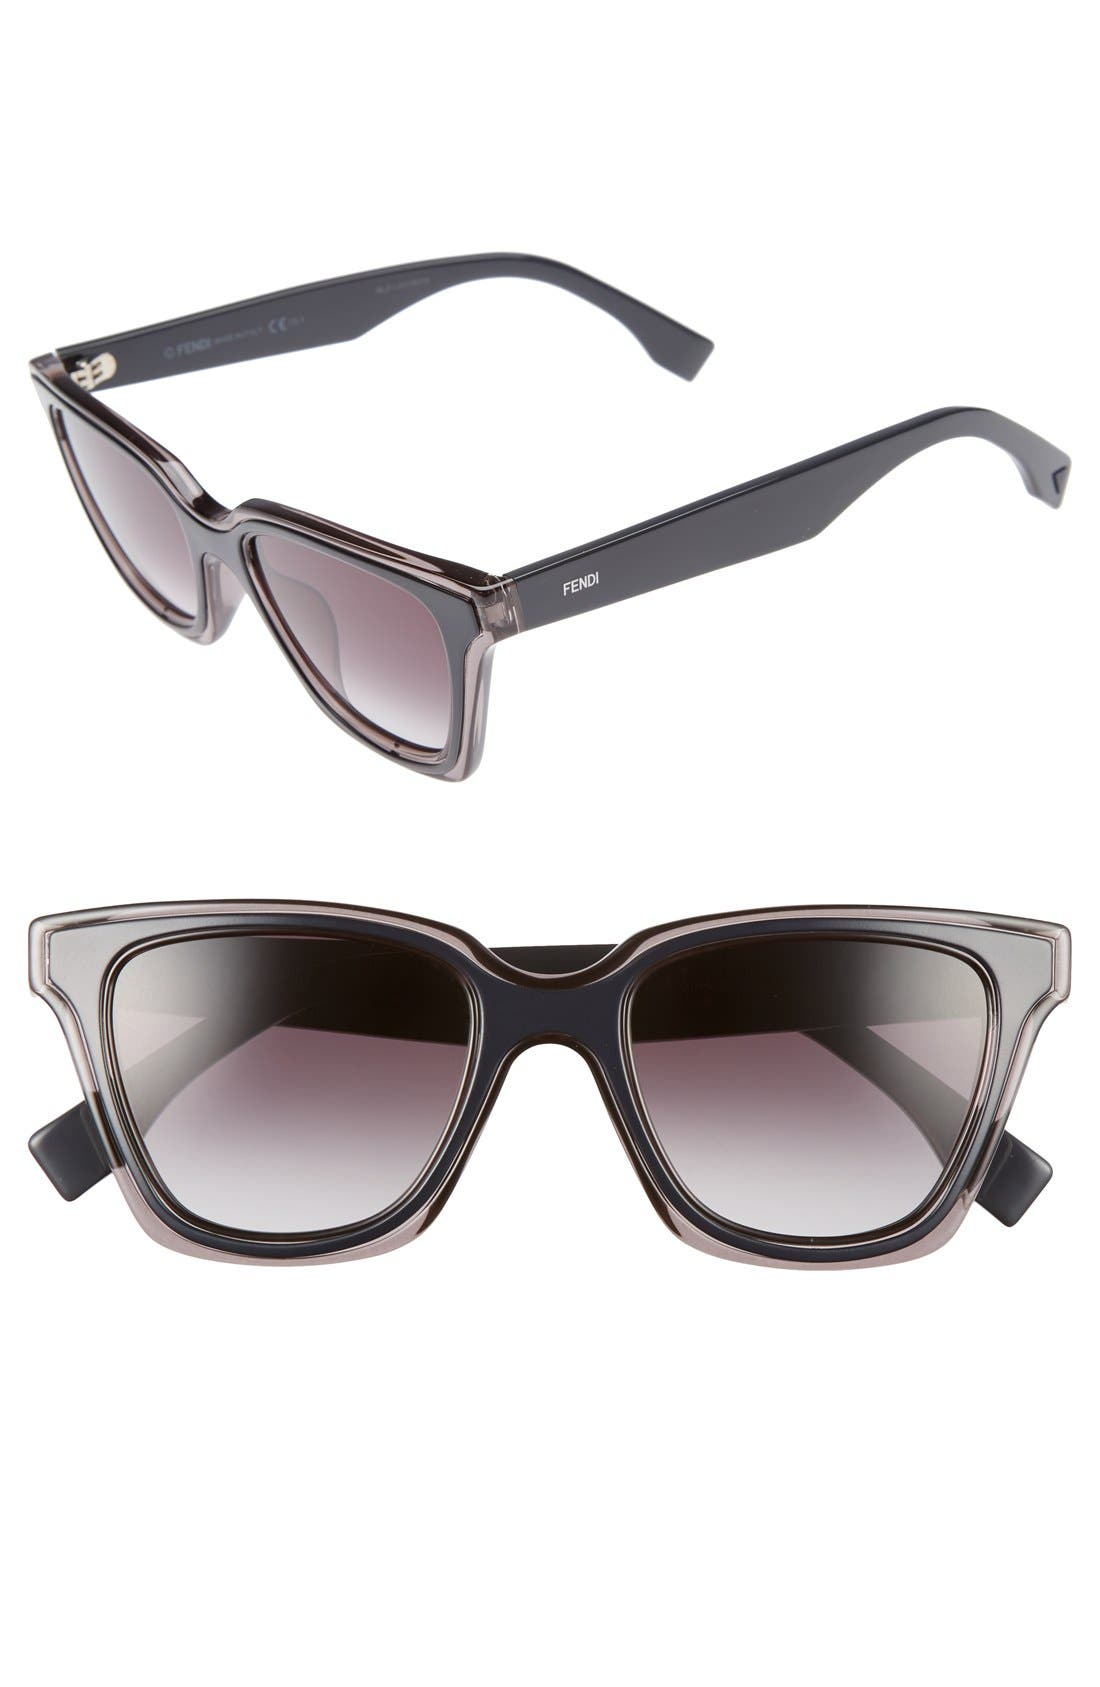 Be You 50mm Gradient Sunglasses,                         Main,                         color, 020